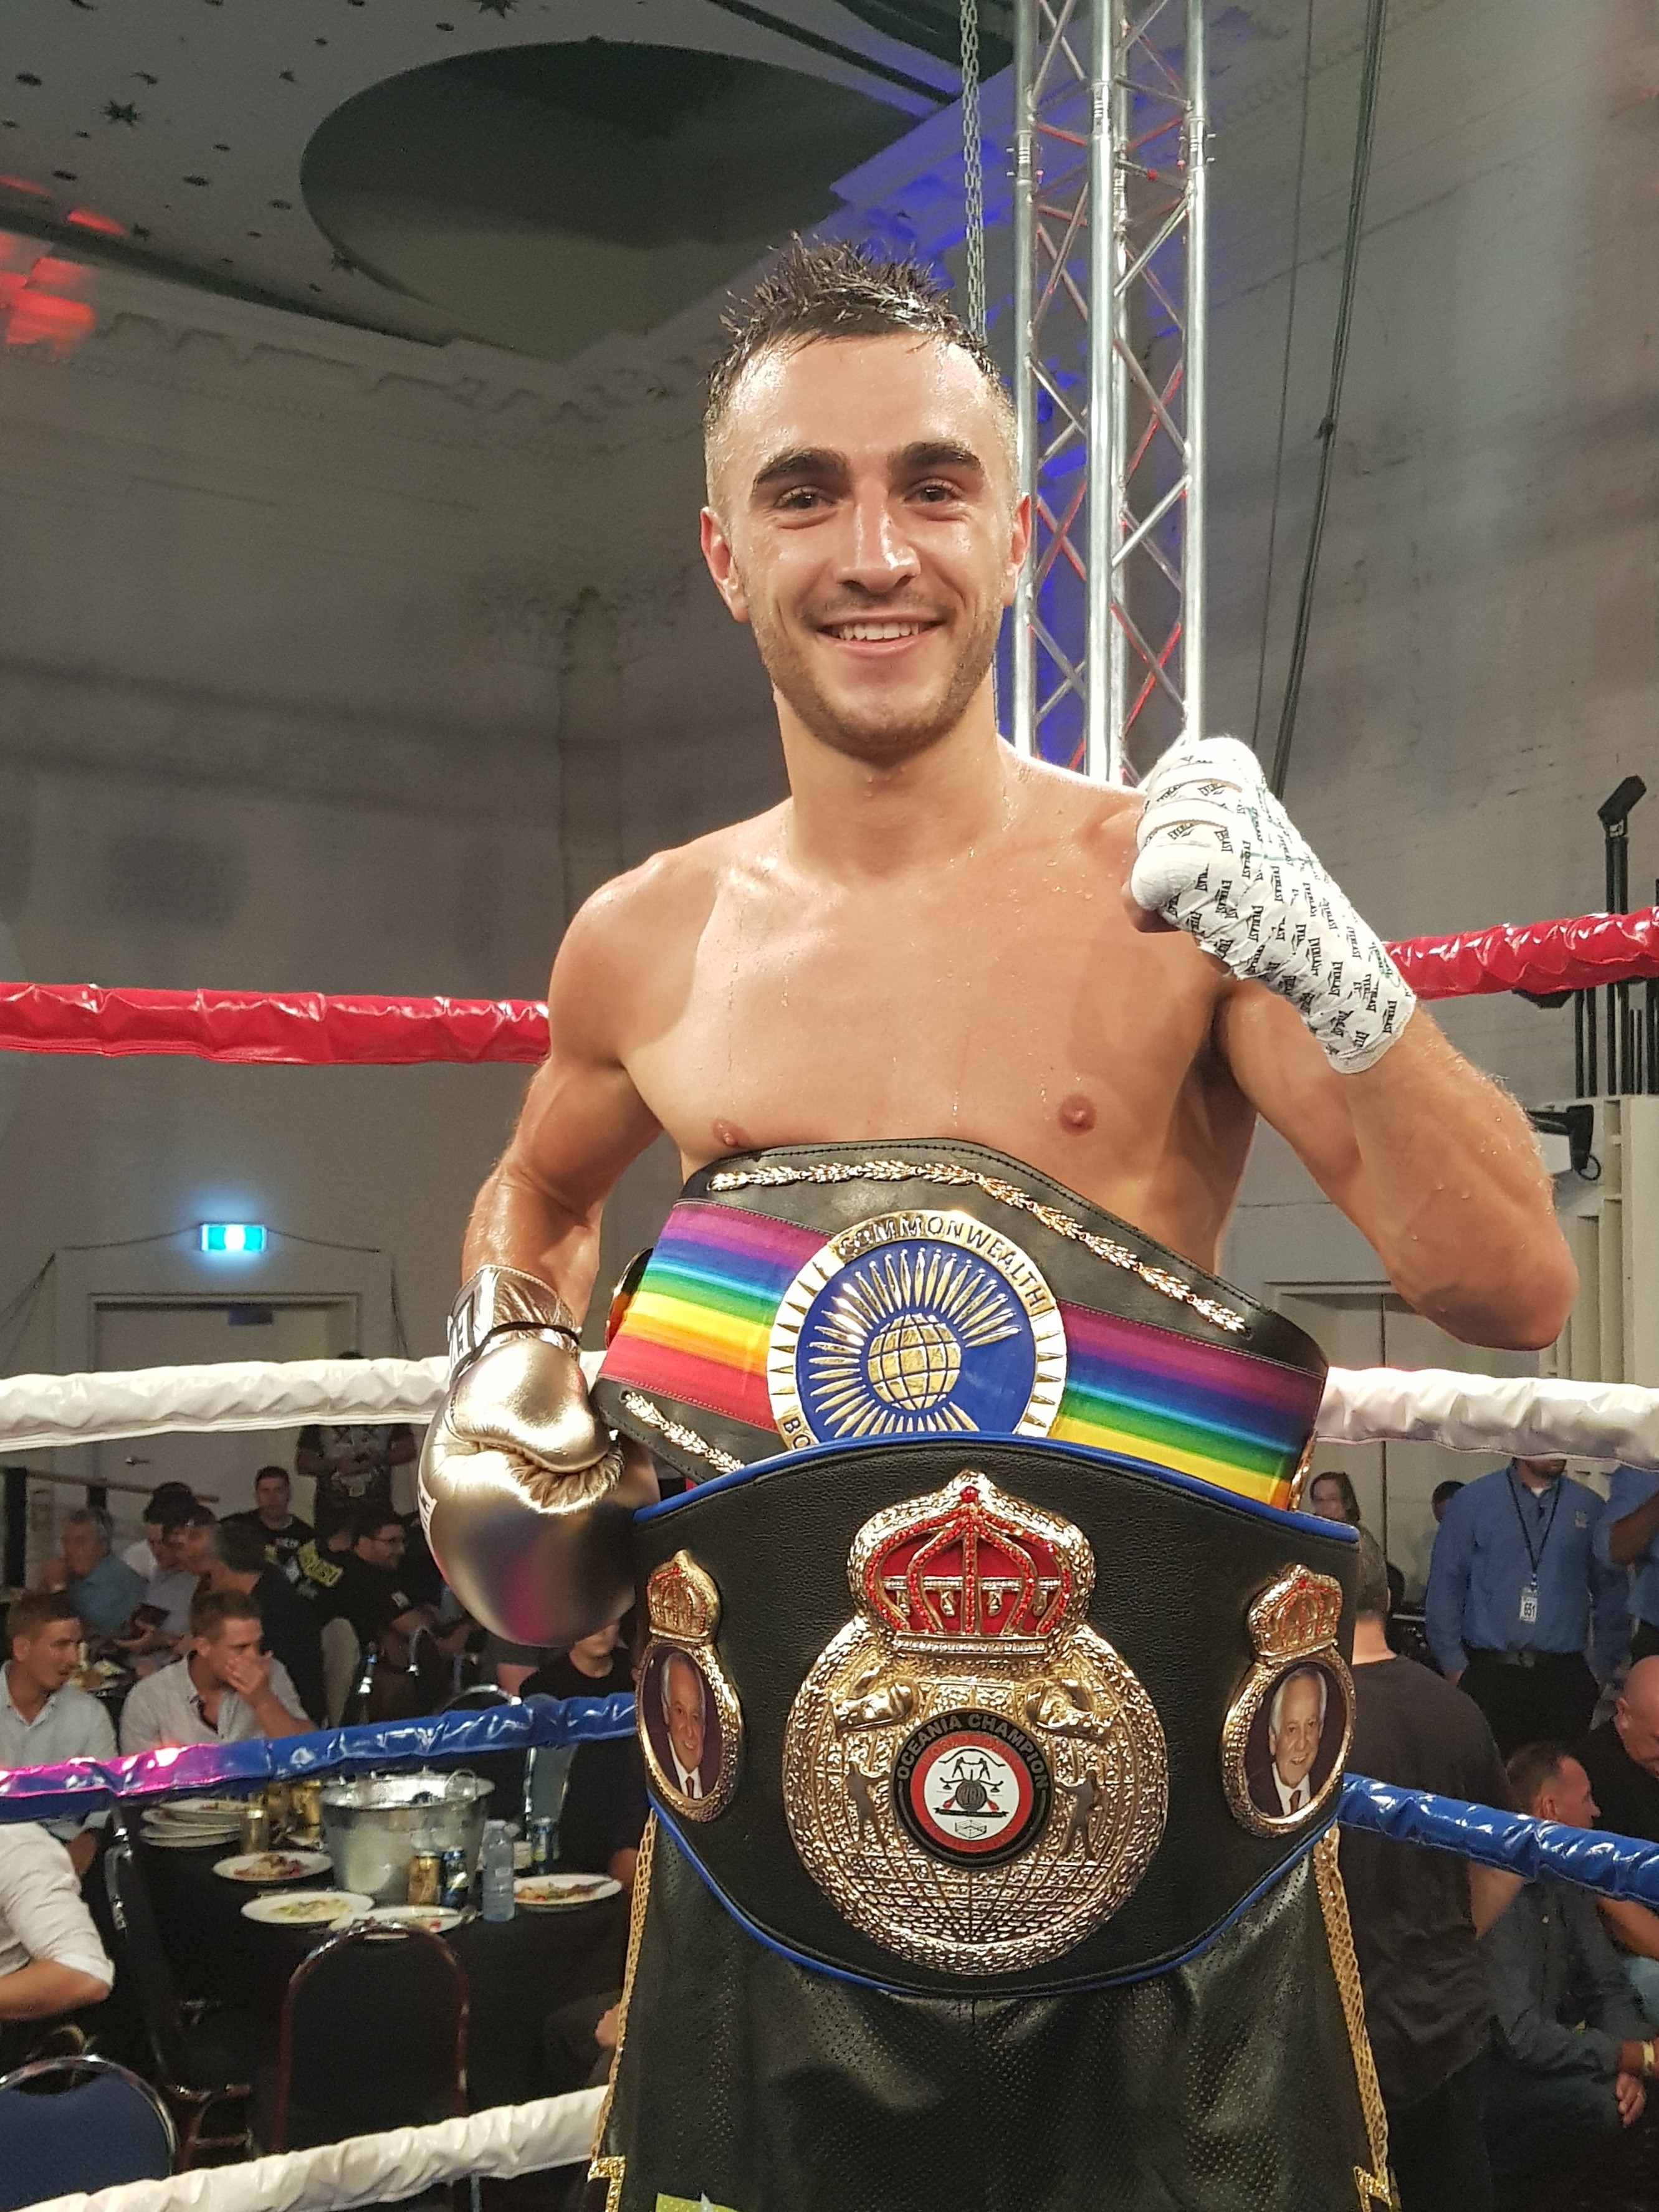 AND THE NEW BANTAMWEIGHT CHAMPION IS…